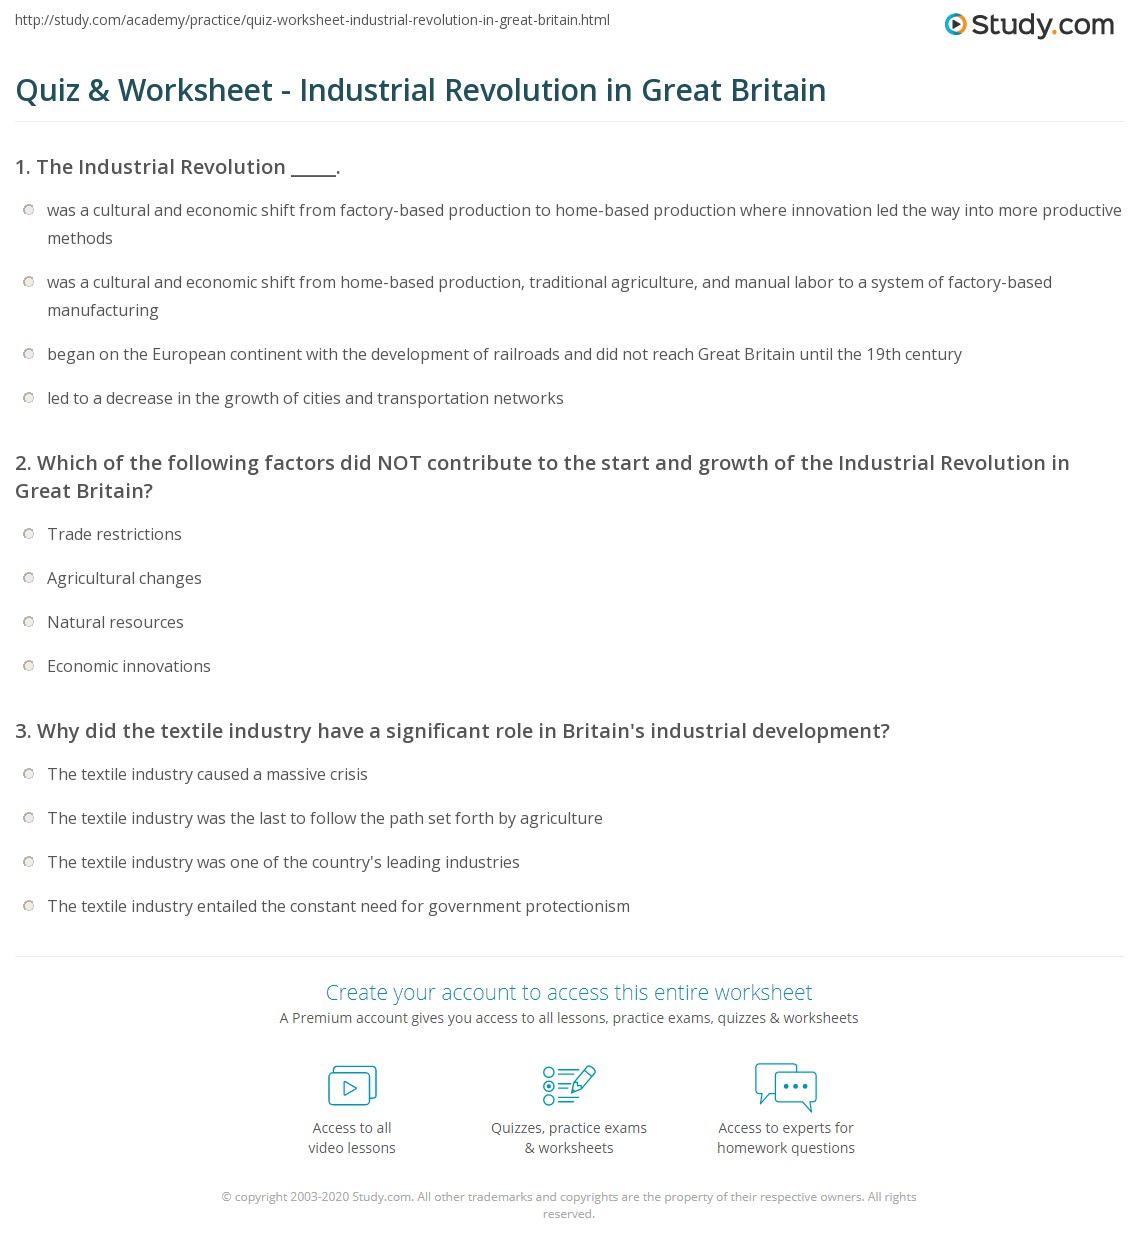 a study of the industrial revolution Industrial revolution unit study guide this study guide helps students prepare for industrial revolution focused assessments by organizing vocabulary, content area questions, and extended essay writing responses covering the causes, why britain, natural resources, enclosure movement, ideas spread, advances in science.